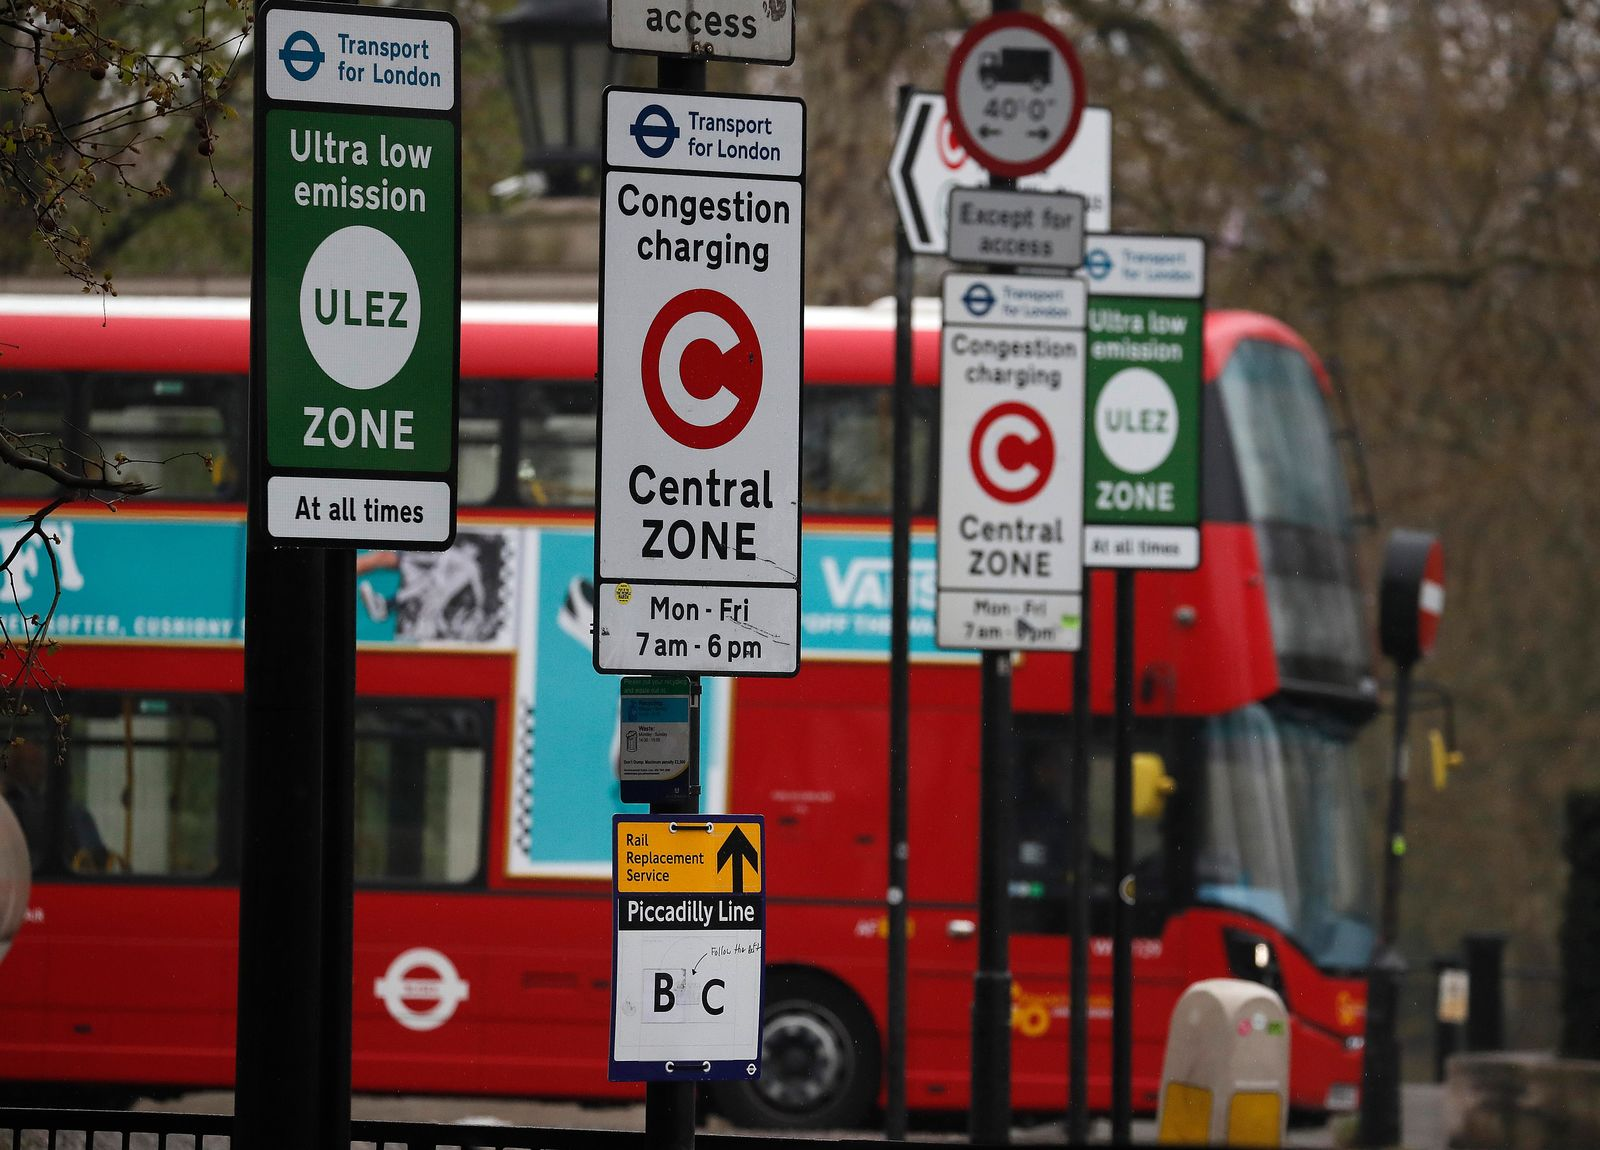 A London bus enters the new Ultra Low Emission Zone that has come into force Monday, in London, Monday, April 8, 2019, one of the world's first emission charge for cars. Drivers of older and more polluting cars face paying a new £12.50 fee adding to the Congestion Charge to enter the centre of the capital. (AP Photo/Frank Augstein)